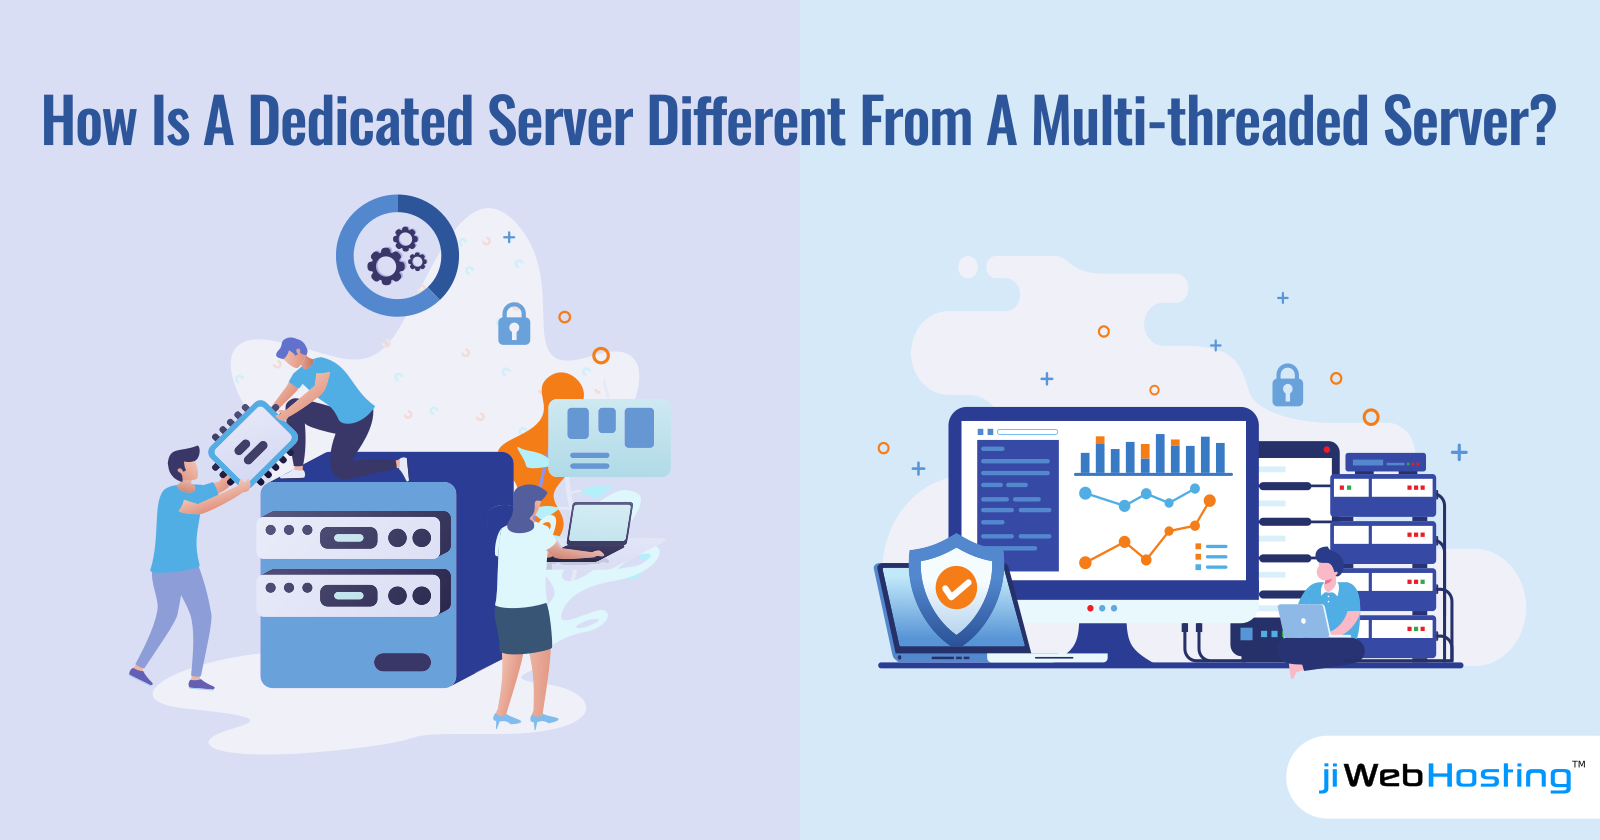 How Is A Dedicated Server Different From A Multi-threaded Server?